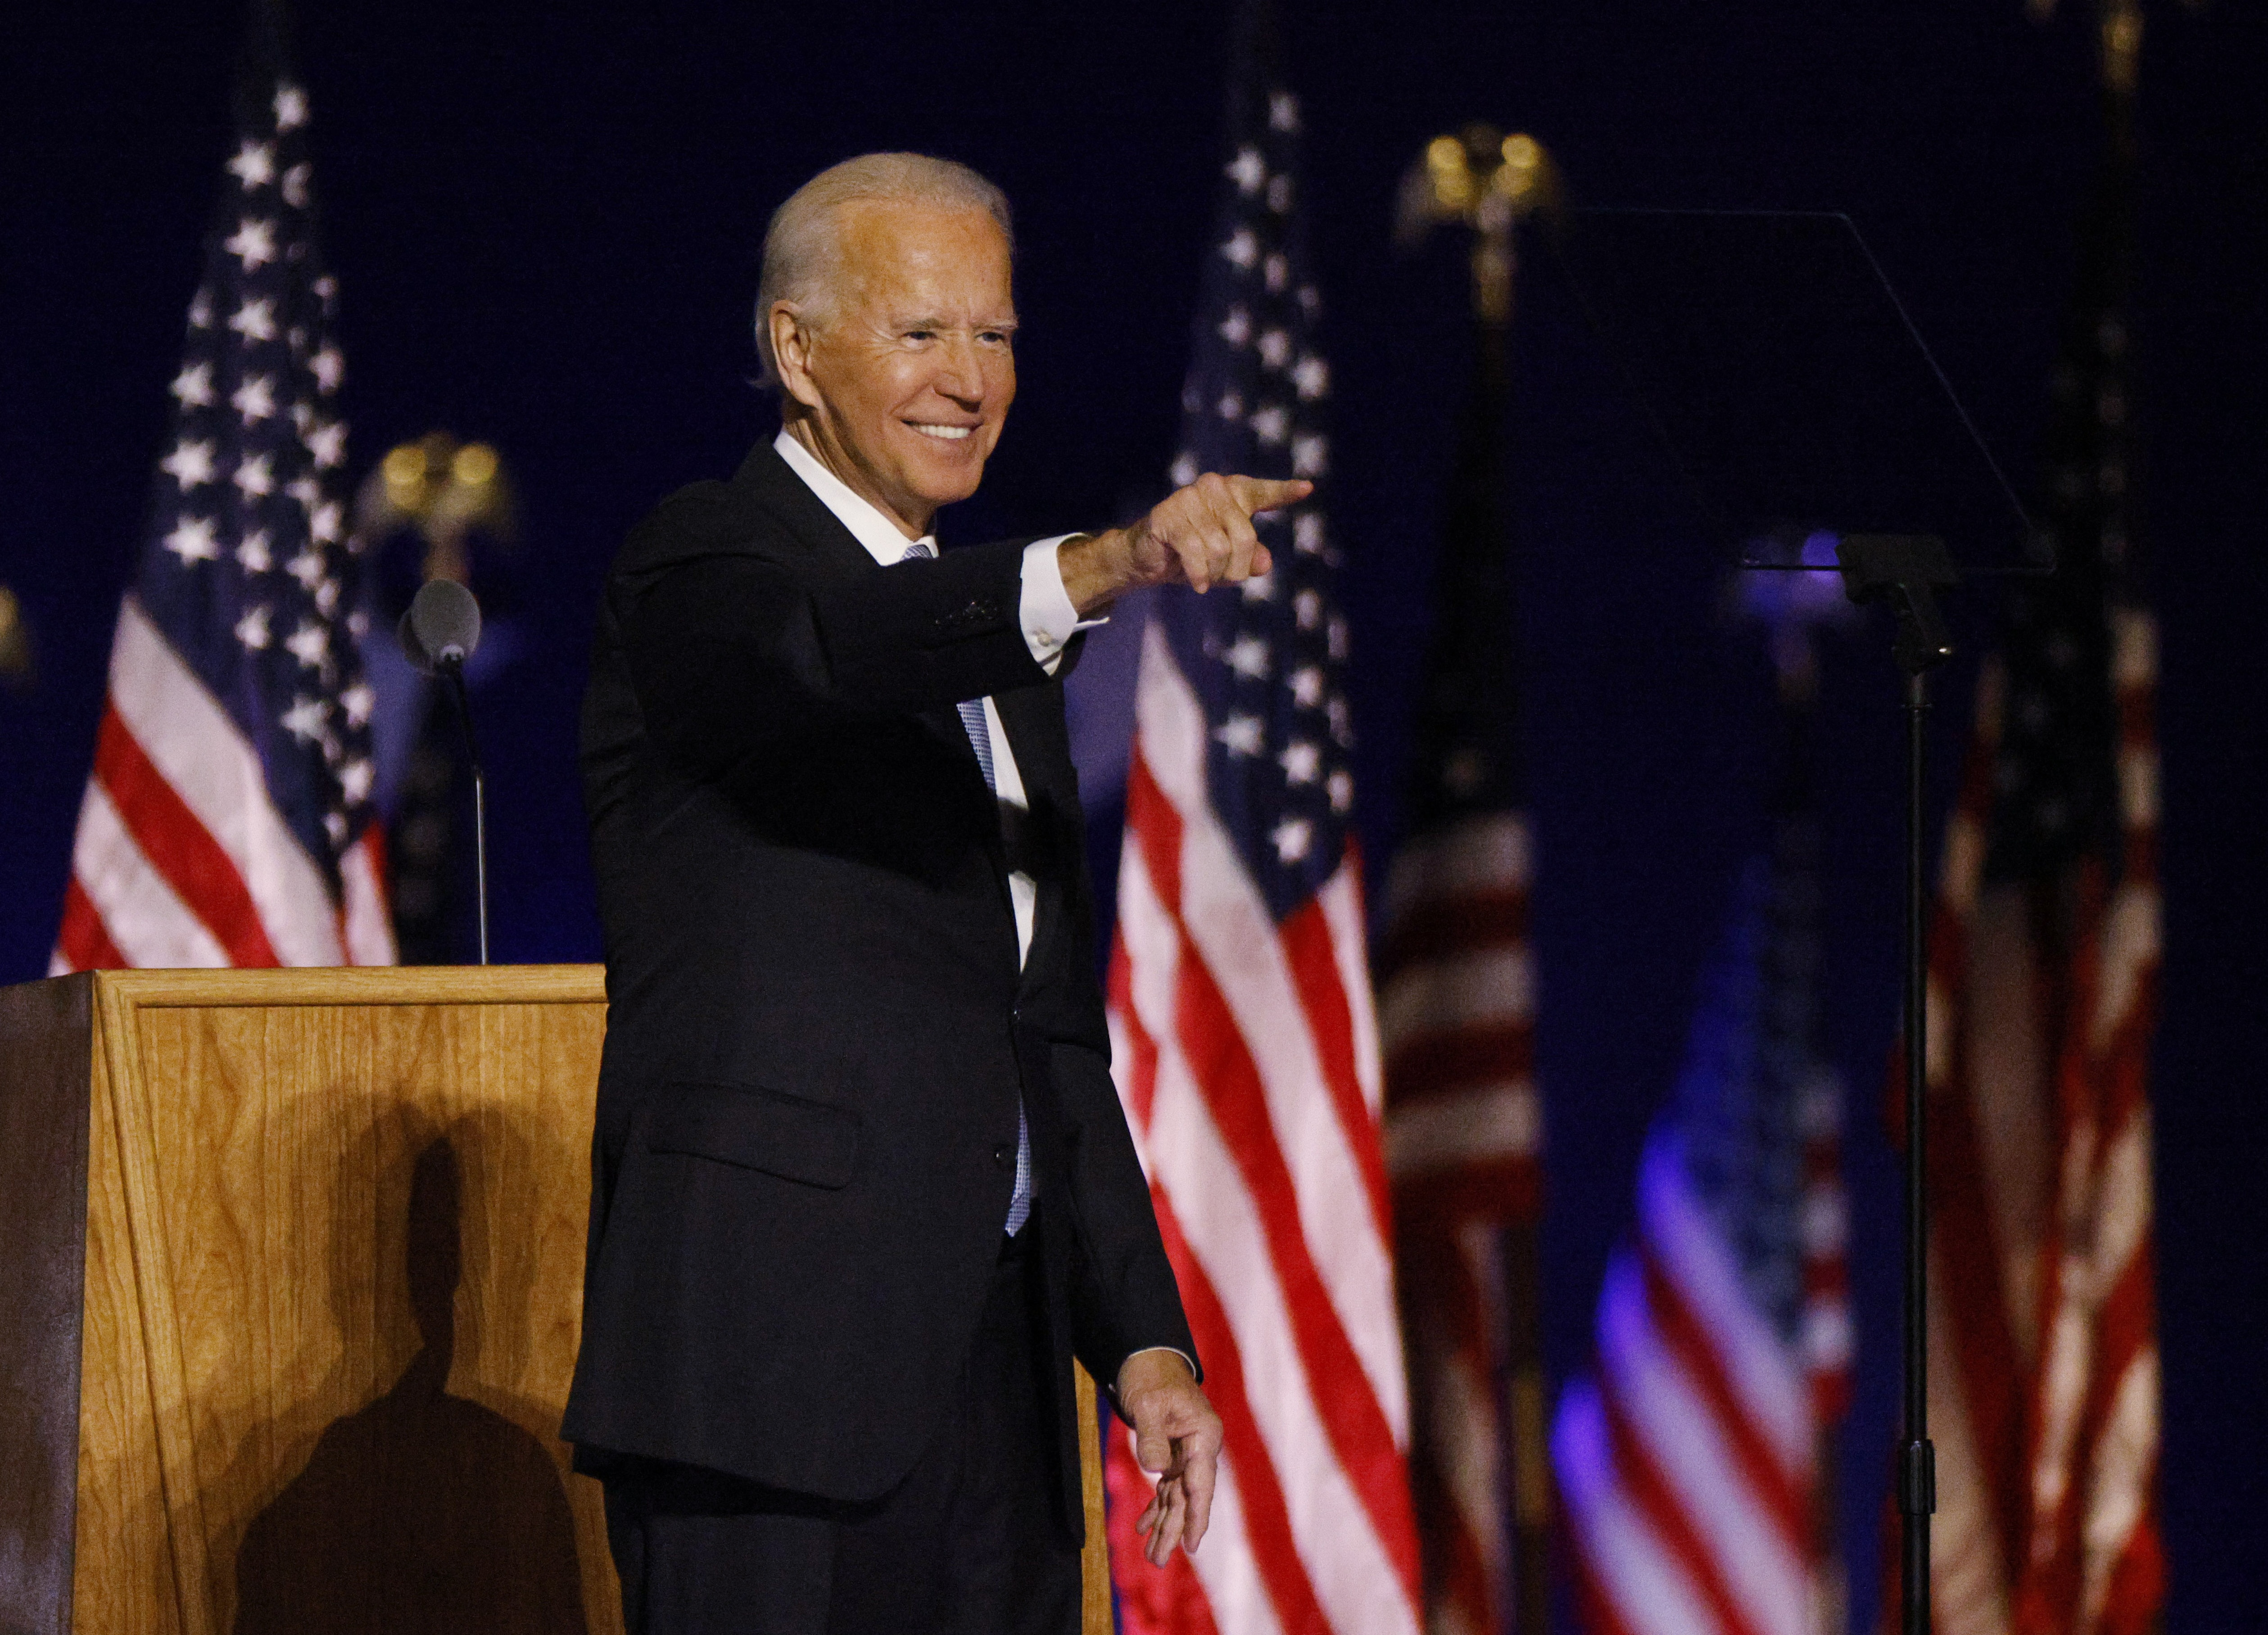 2020_11_08T015843Z_2103985_HP1EGB805HVKX_RTRMADP_3_USA_ELECTION_BIDEN.JPG